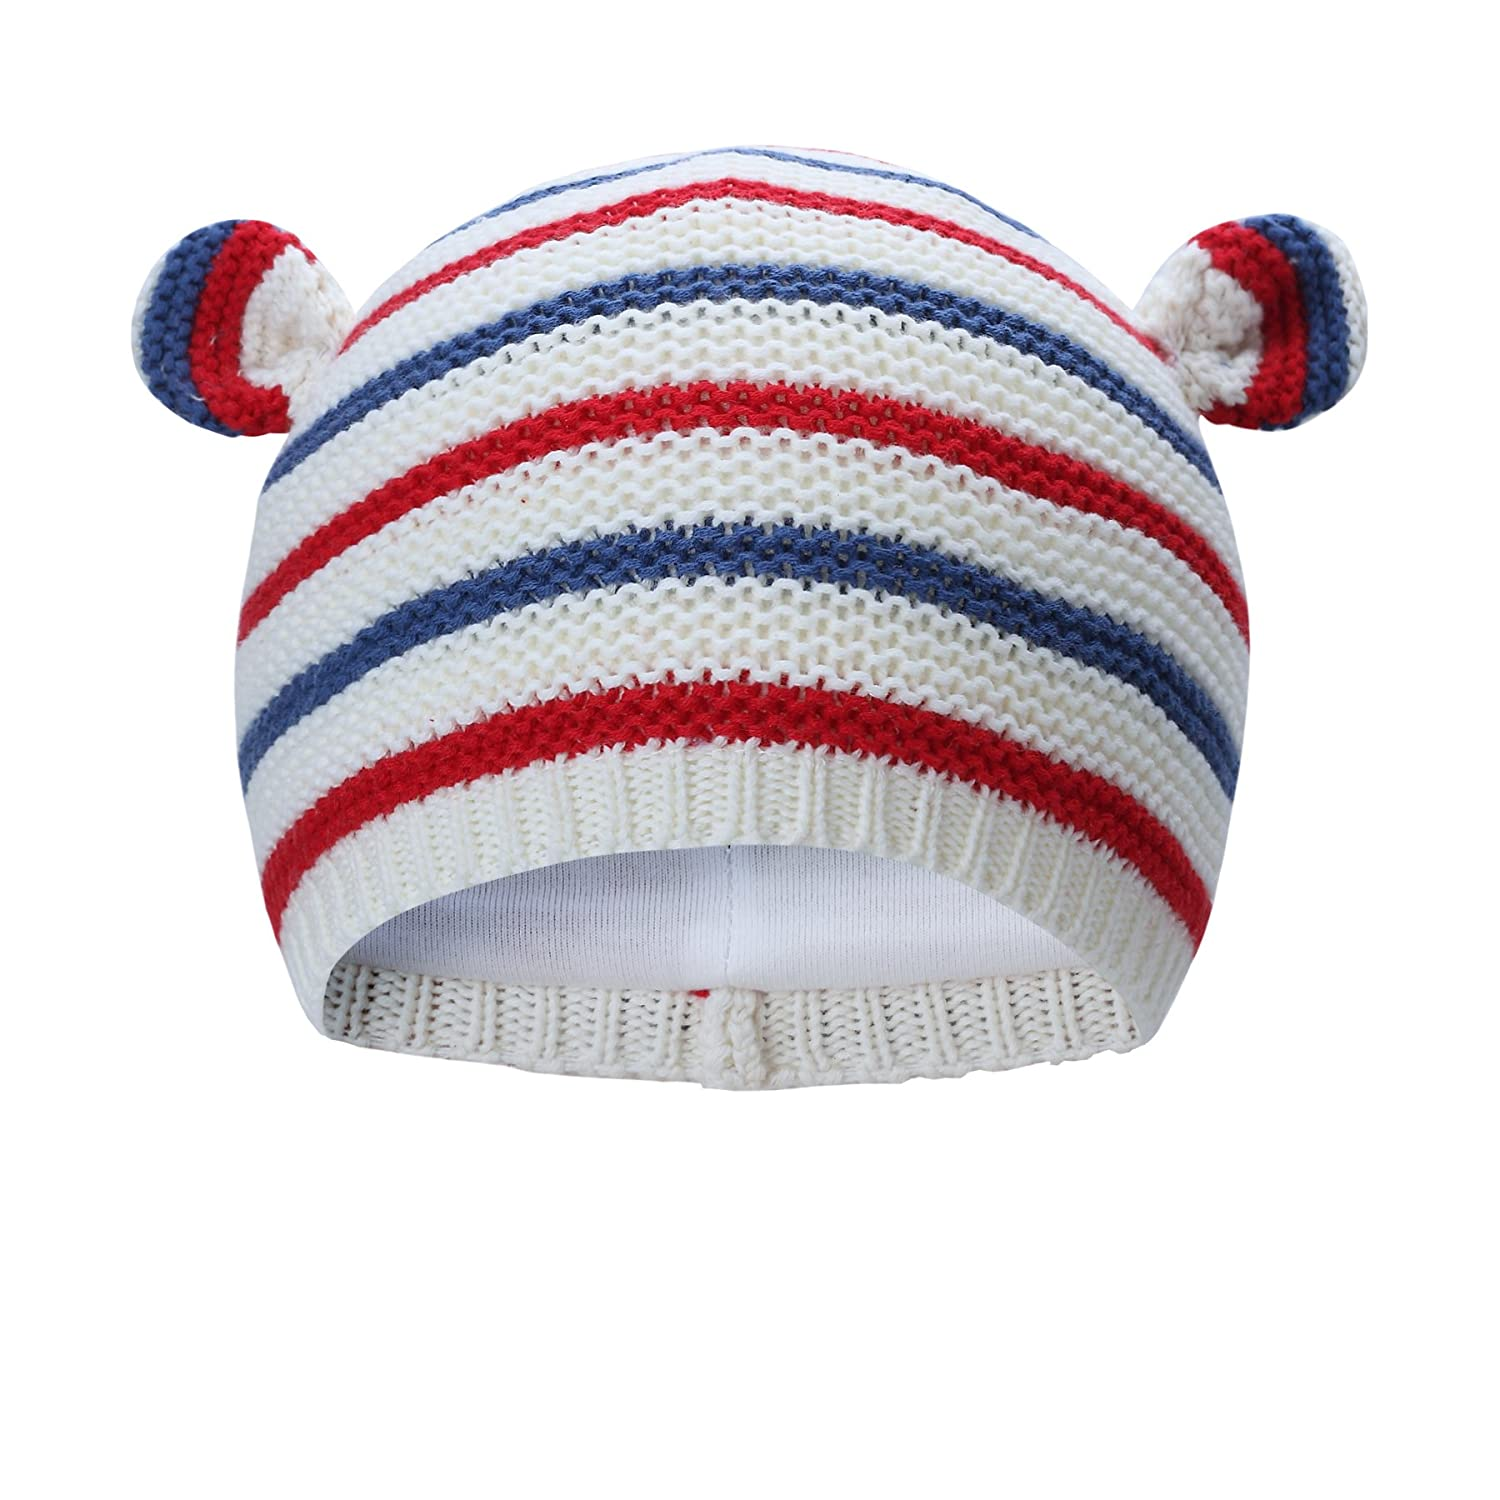 Vivobiniya Newborn baby winter lovely Knitted cap Chromatic stripe baby hats